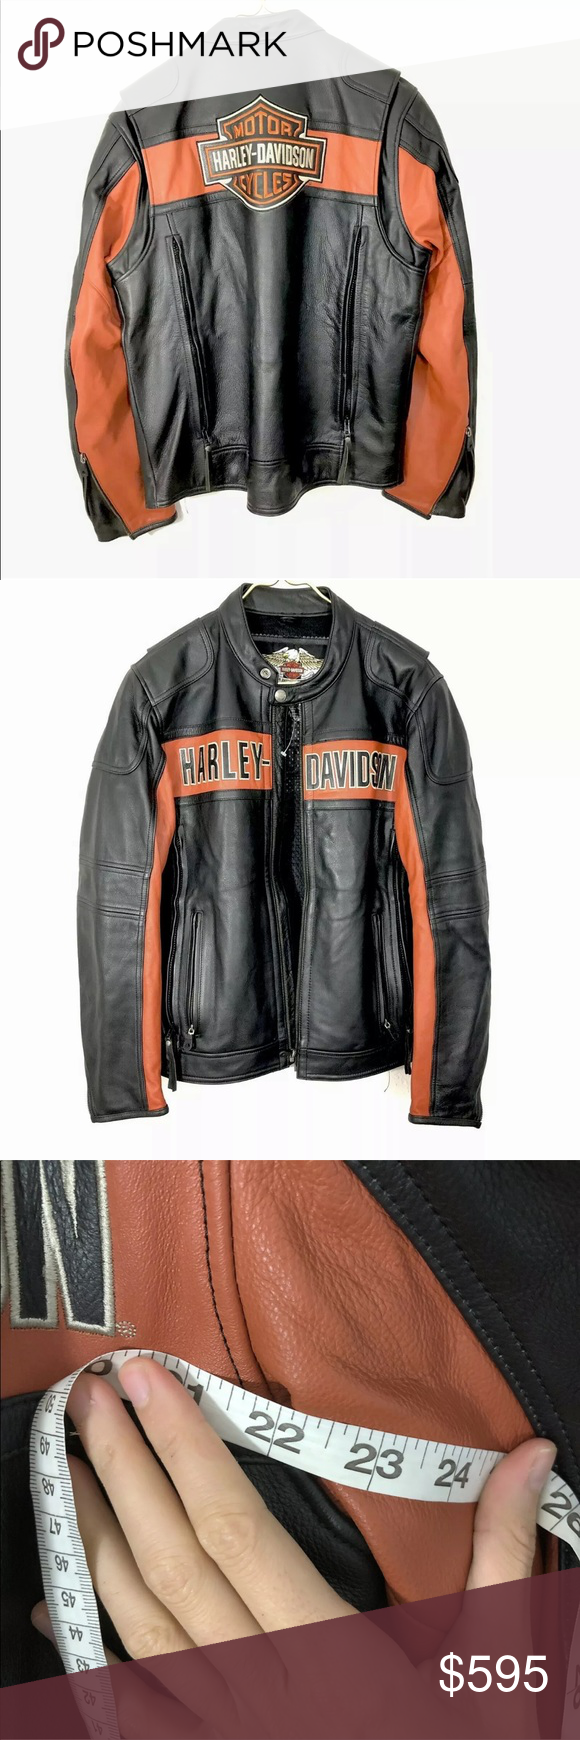 Harley Davidson Victory Lane Leather Jacket M New Harley